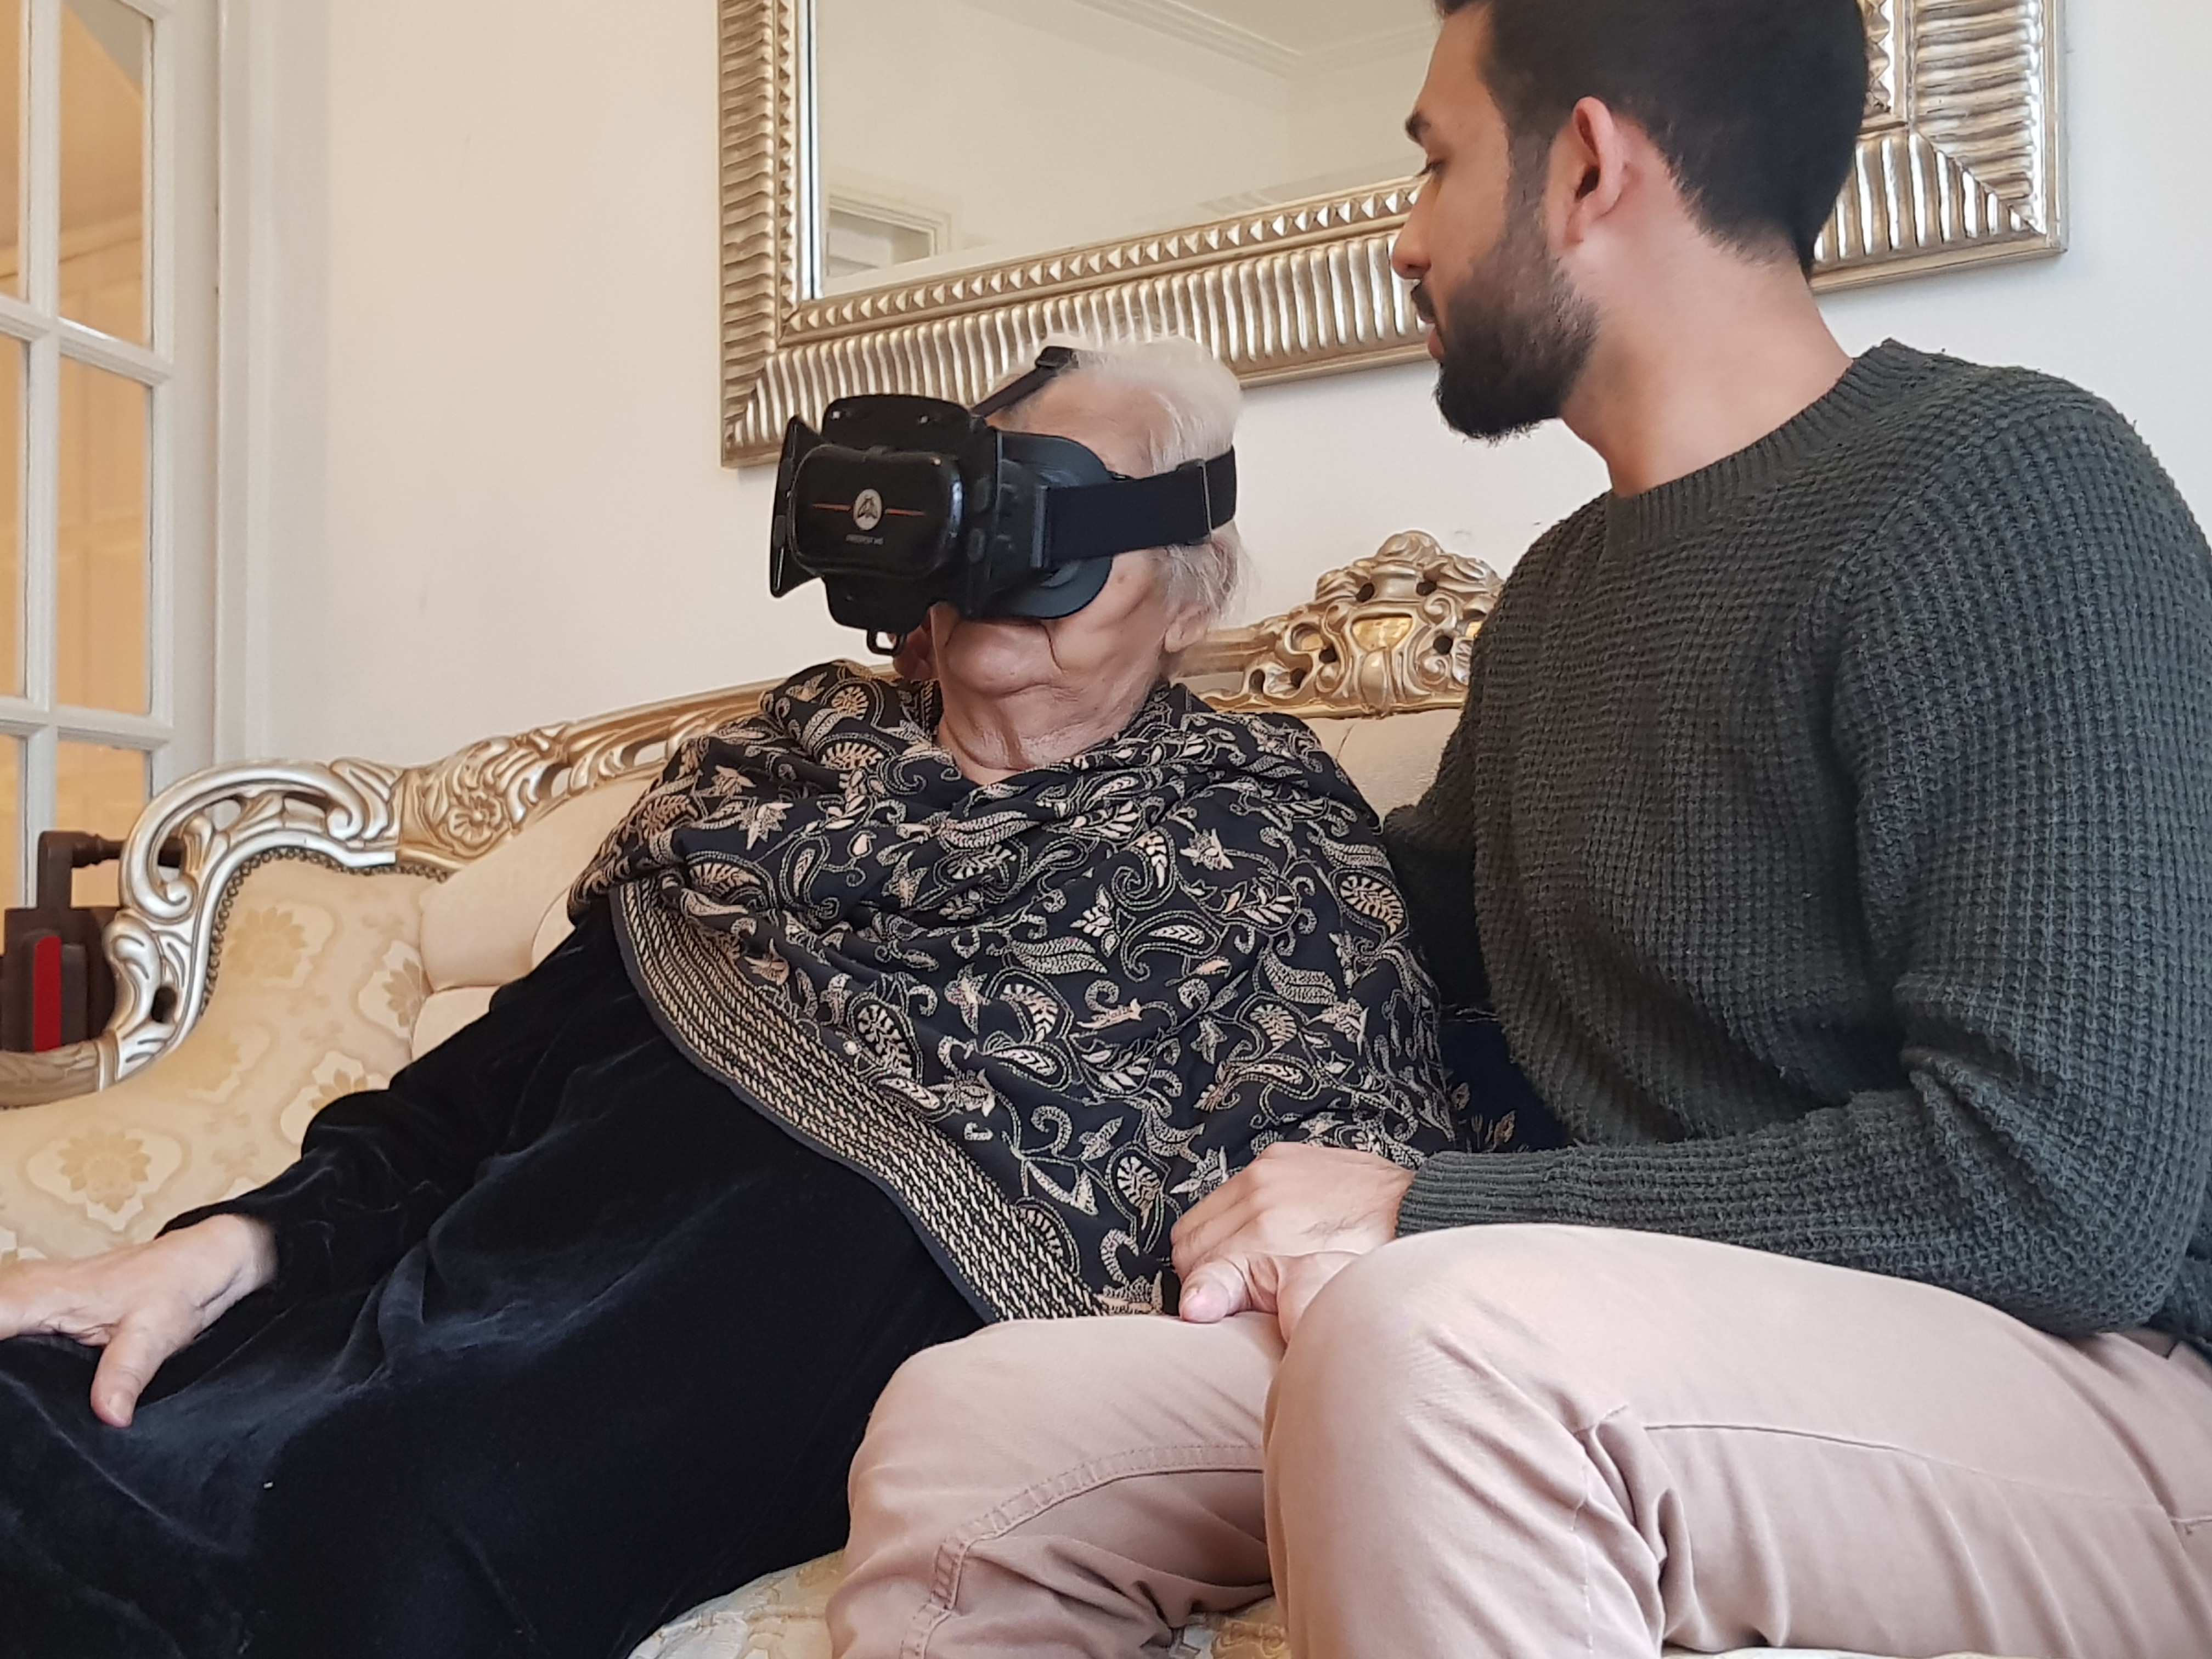 Saida Siddiqui, a partition witness, tests a VR prototype